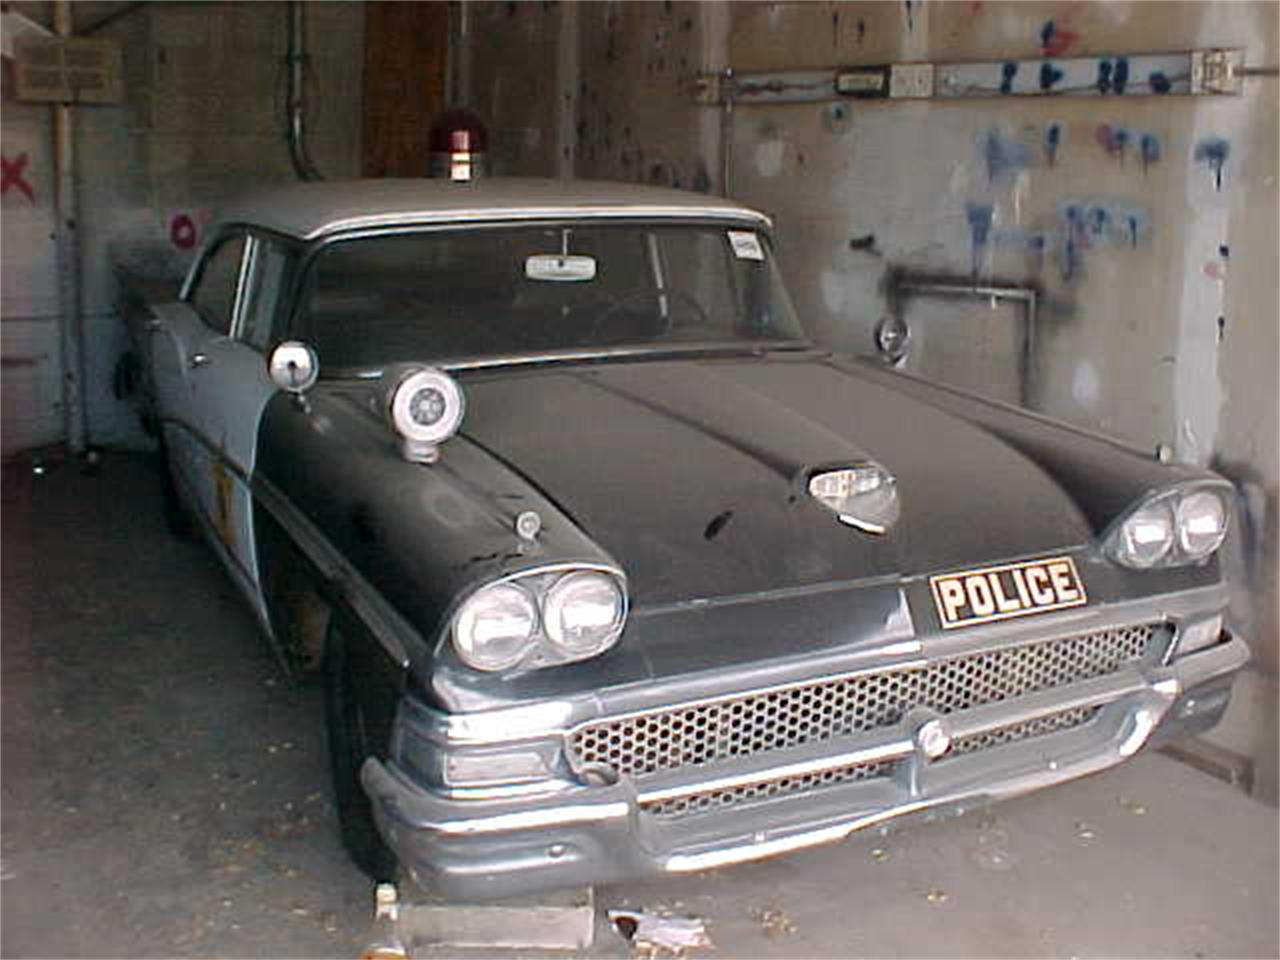 Police Cars For Sale >> 1958 Ford Police Car For Sale Classiccars Com Cc 1085373